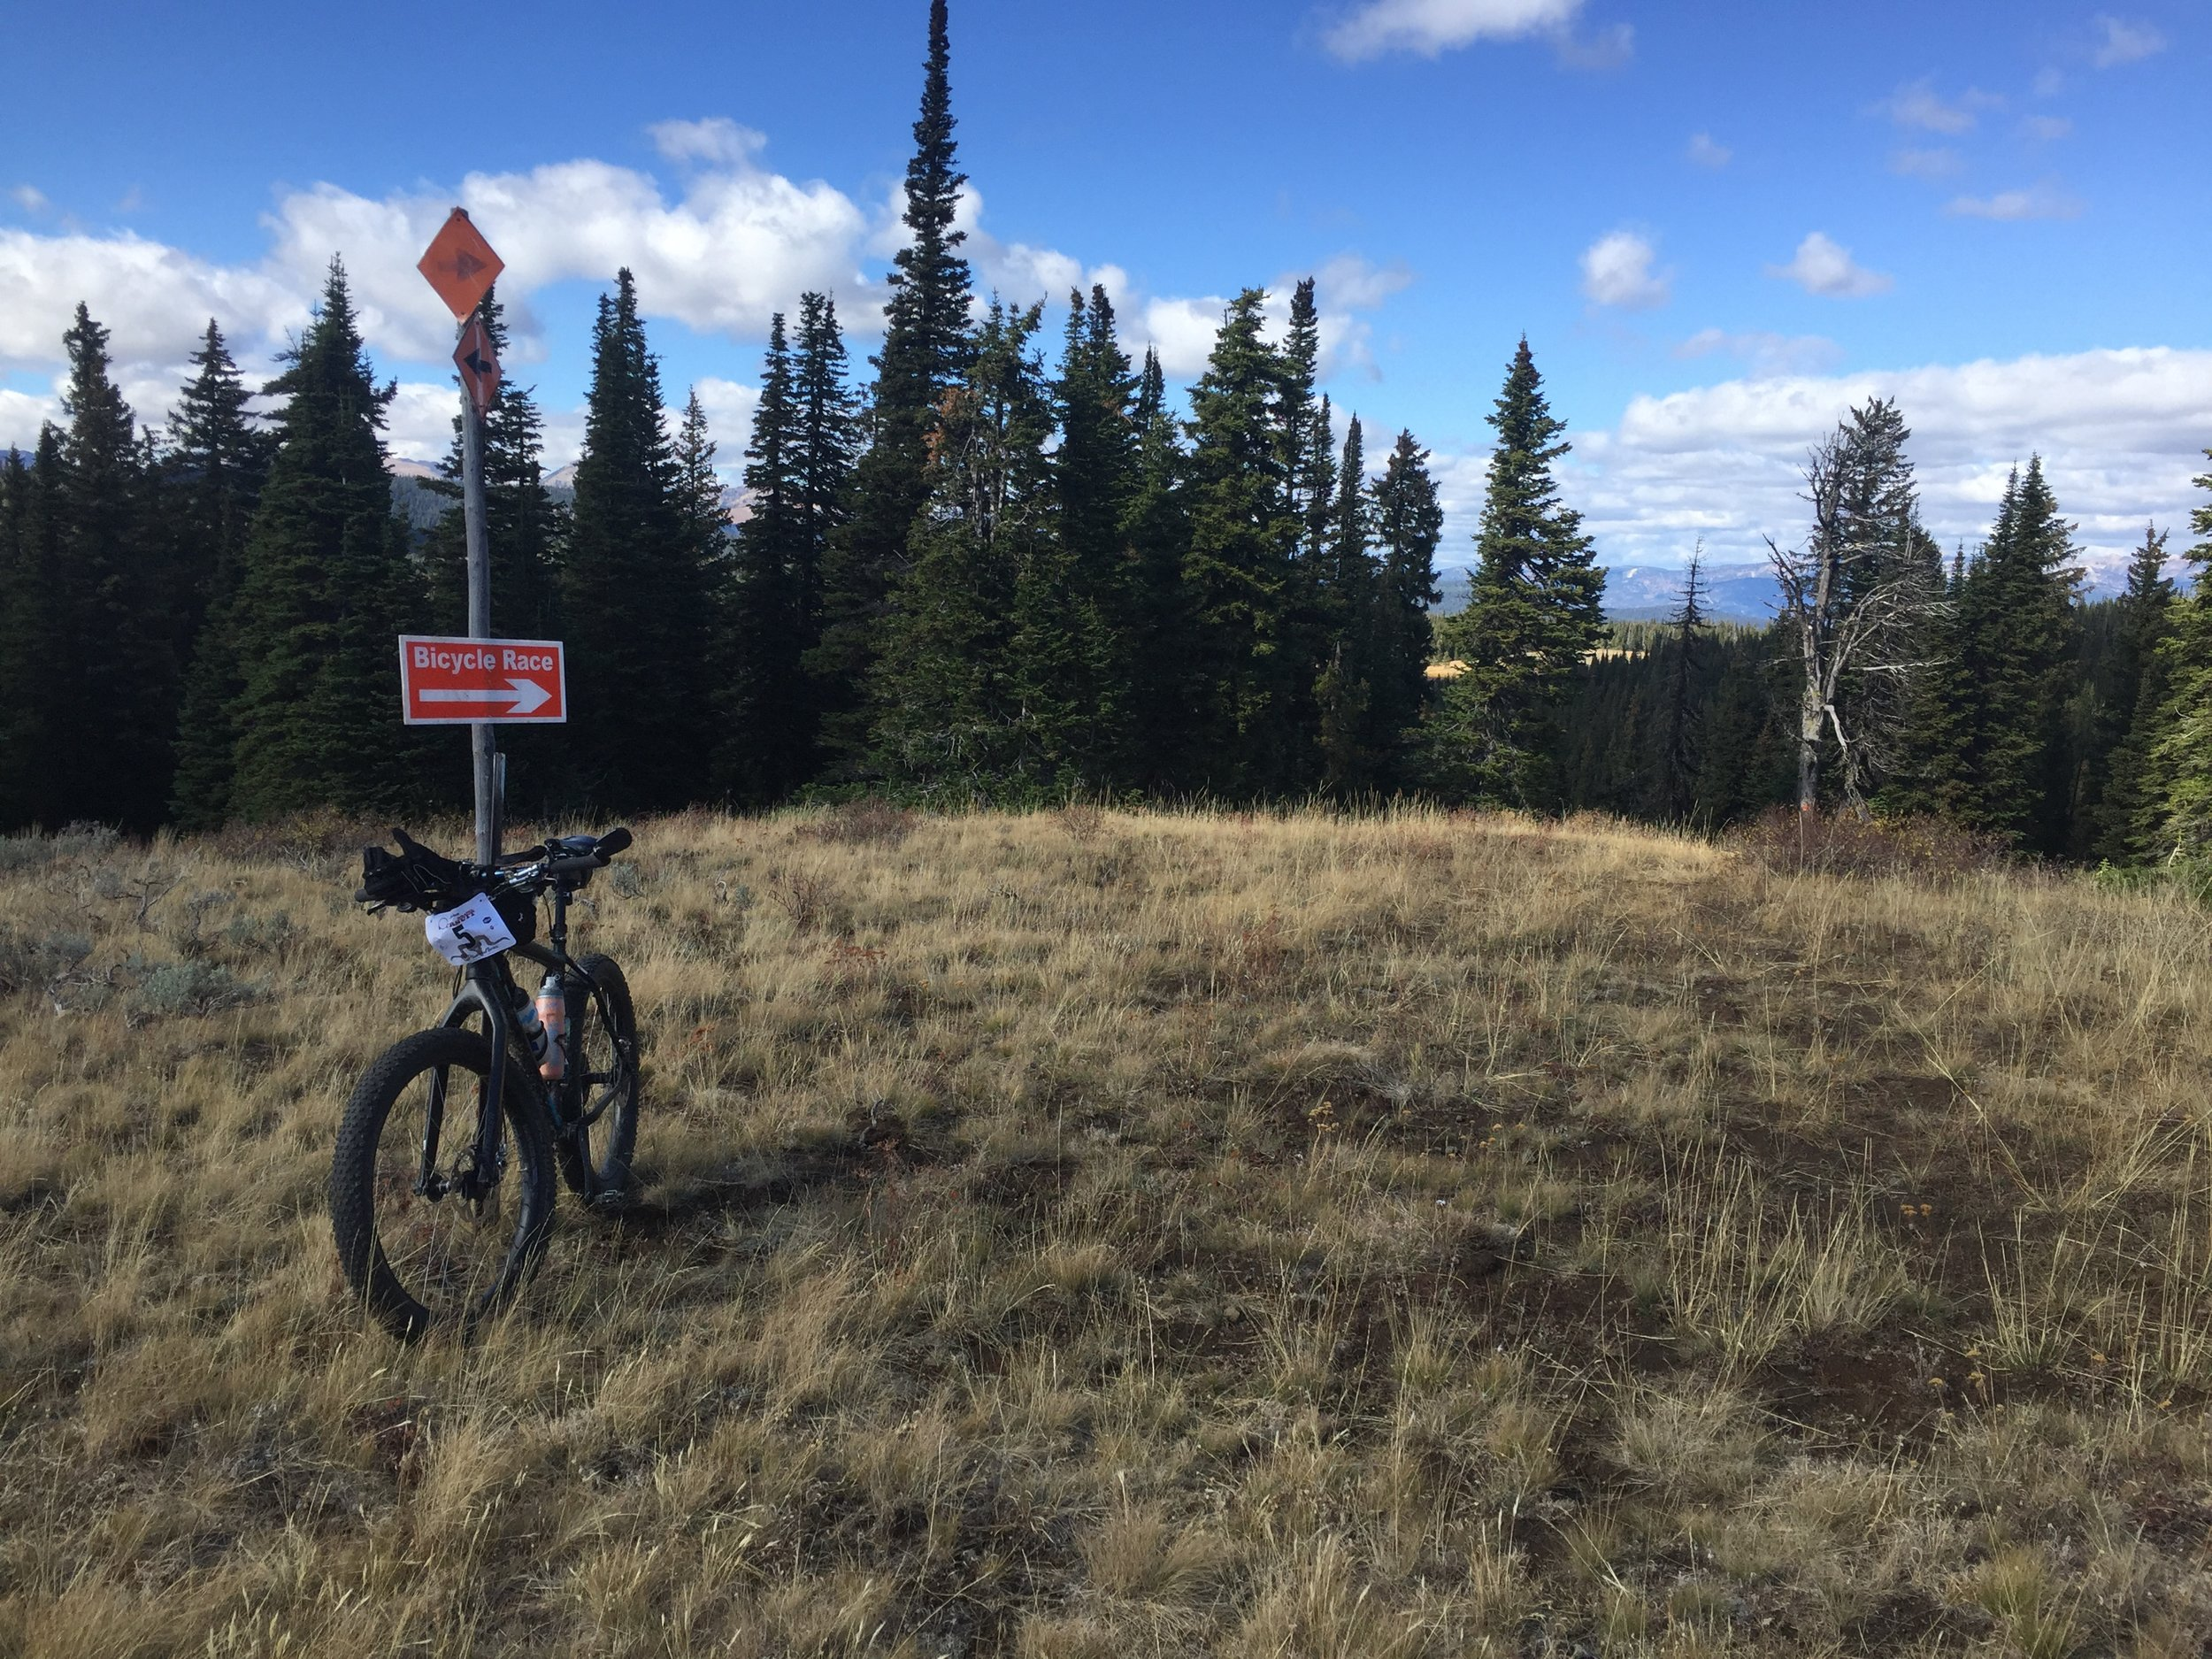 Notice my bike is facing the opposite direction as the sign. I made a wrong turn and ended up riding the north loop backwards. The hike a bike to get to the top took so much energy. Luckily I had a burrito in my pocket.